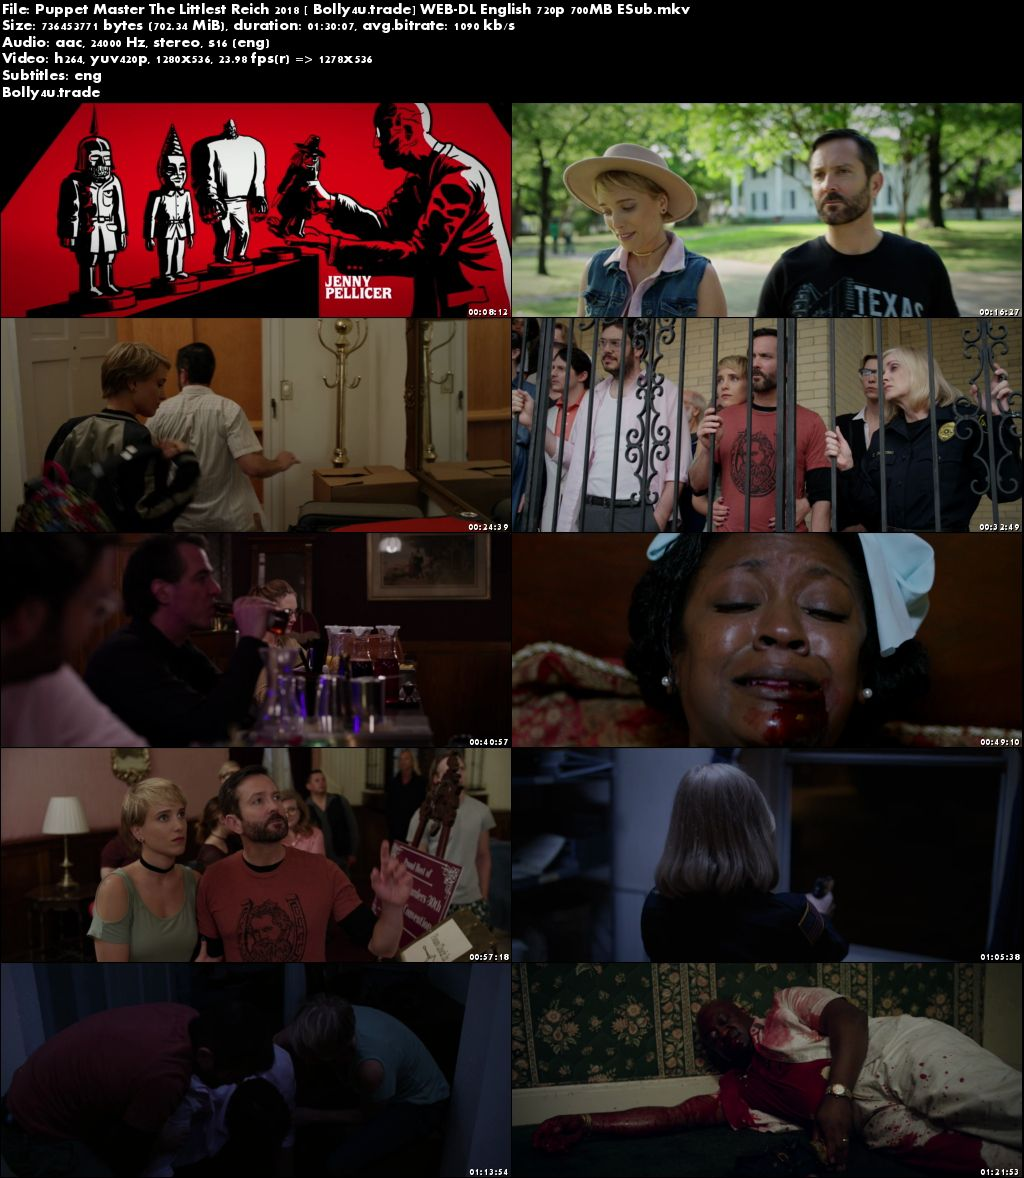 Puppet Master The Littlest Reich 2018 WEB-DL 700MB English 720p ESub Download